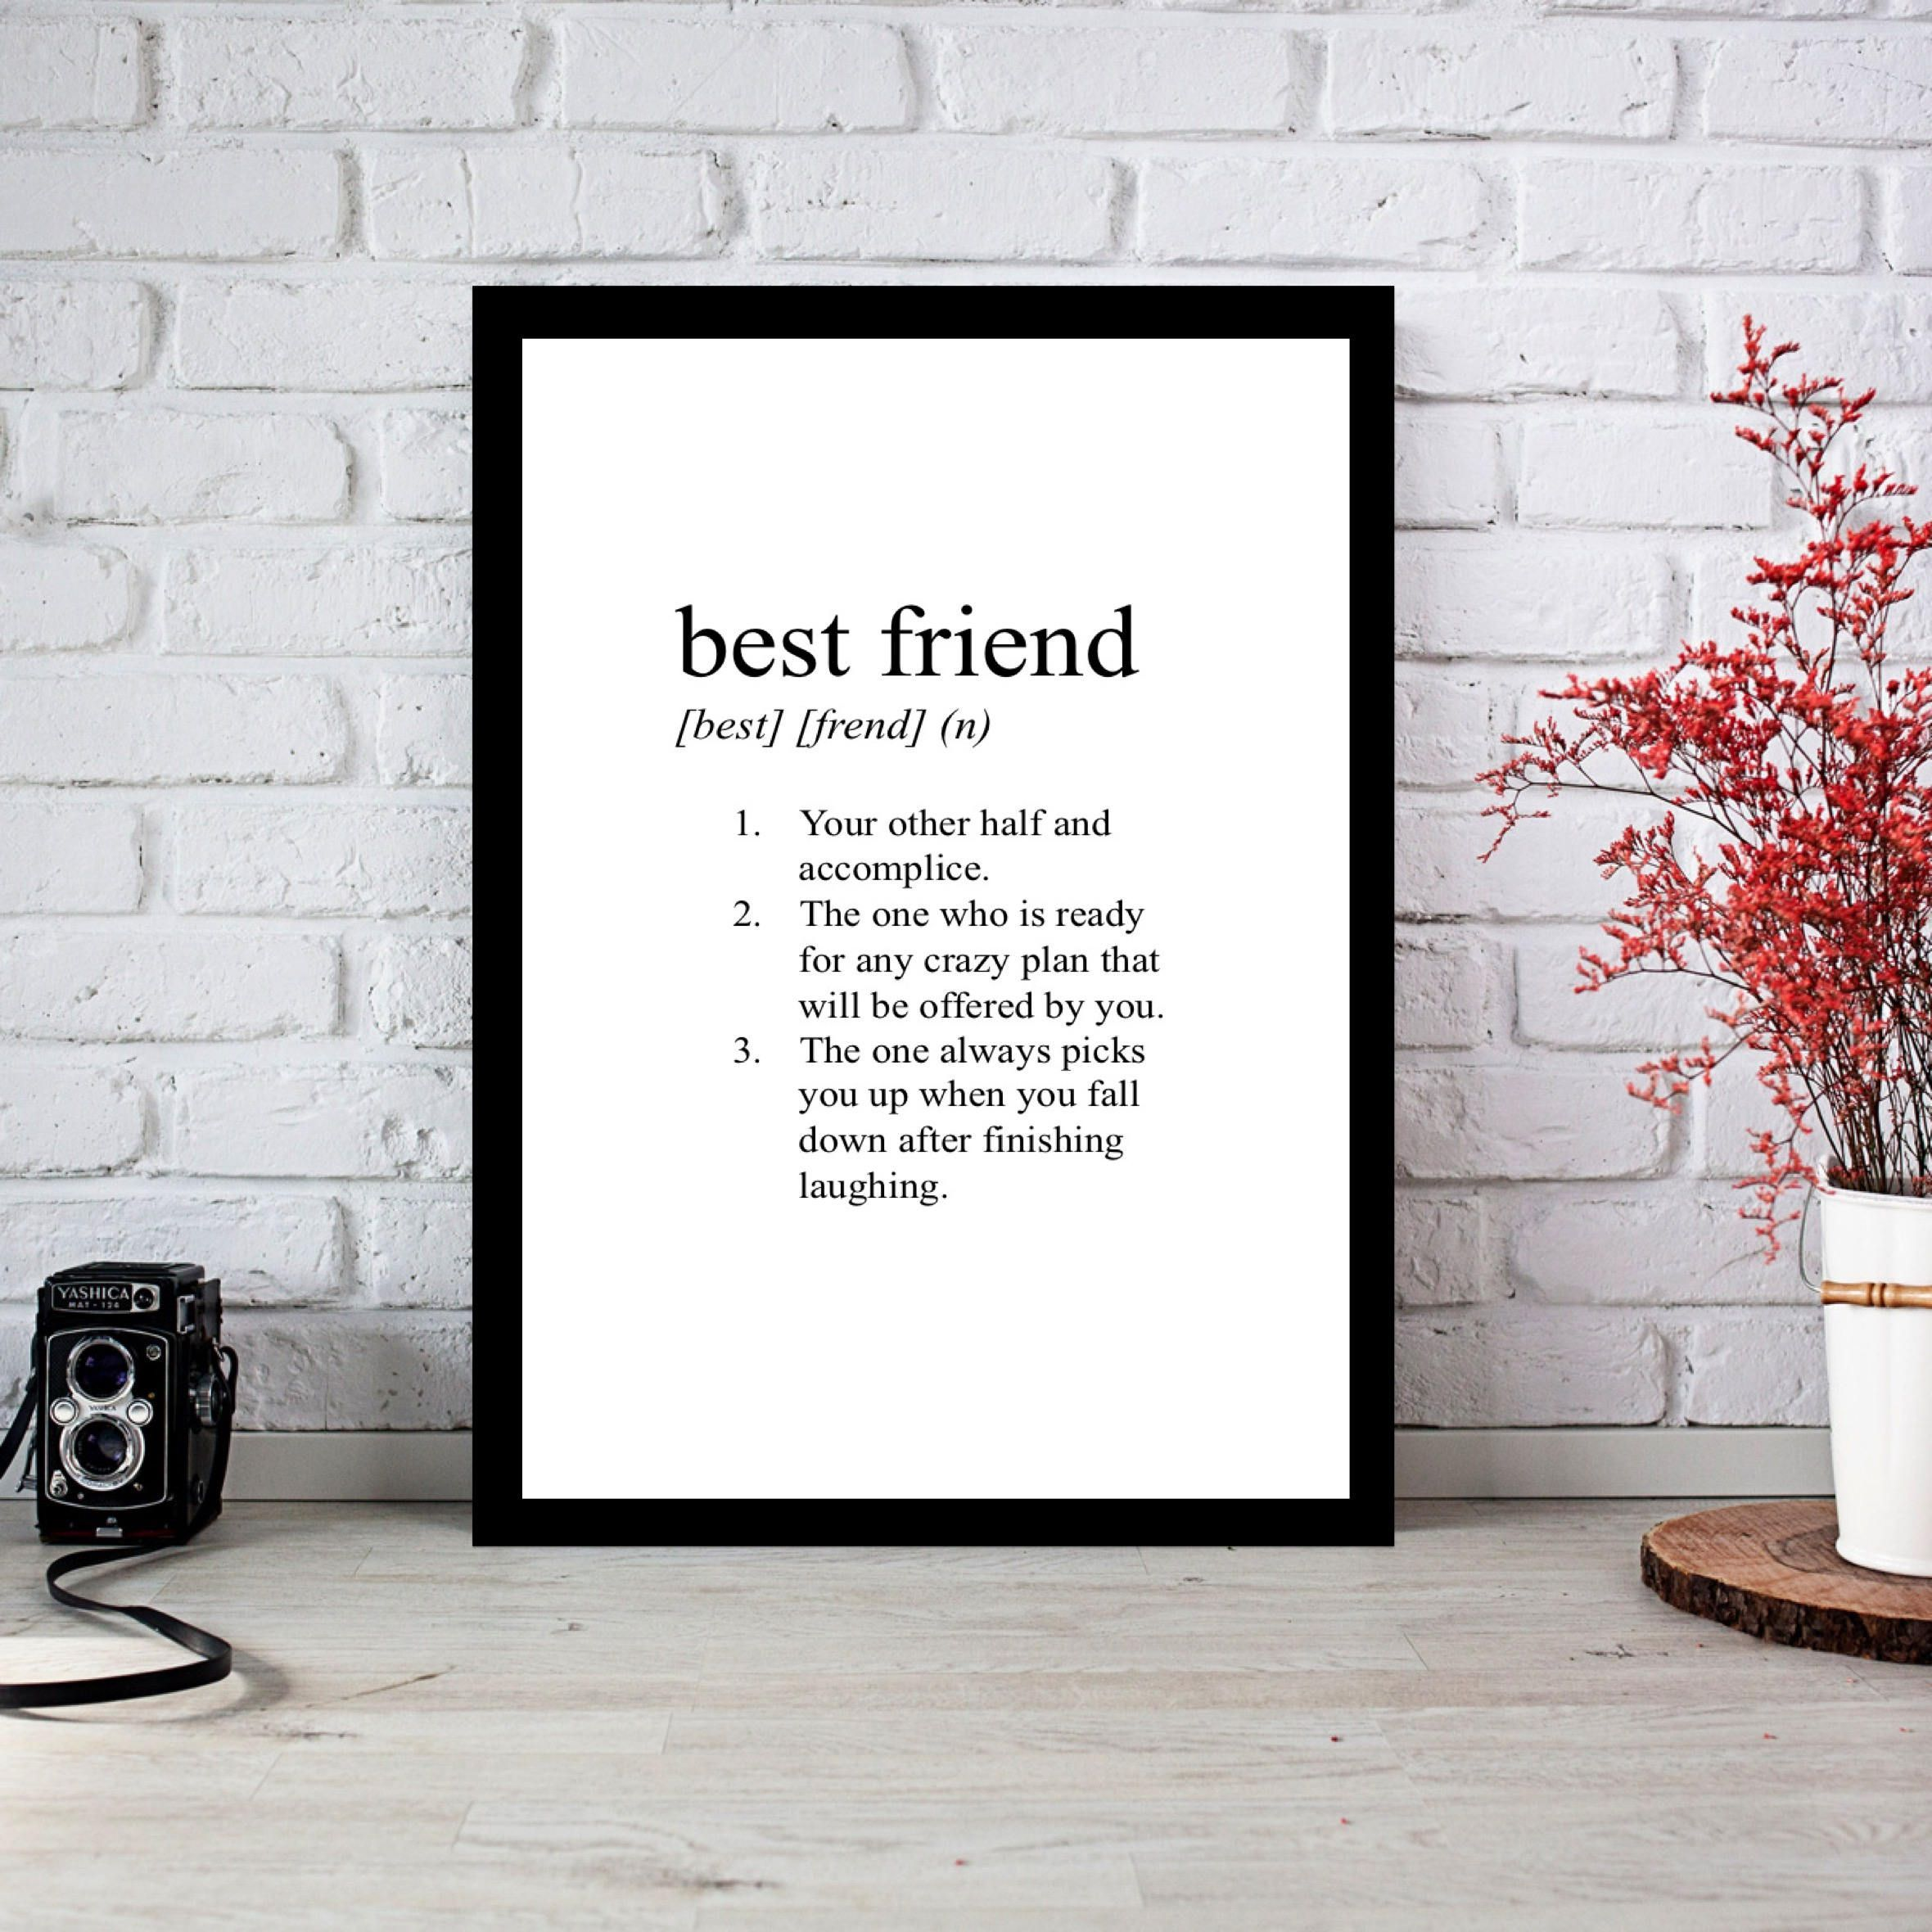 15 Best Friend Christmas Gift Ideas Unique Gifts To Get Your Bff